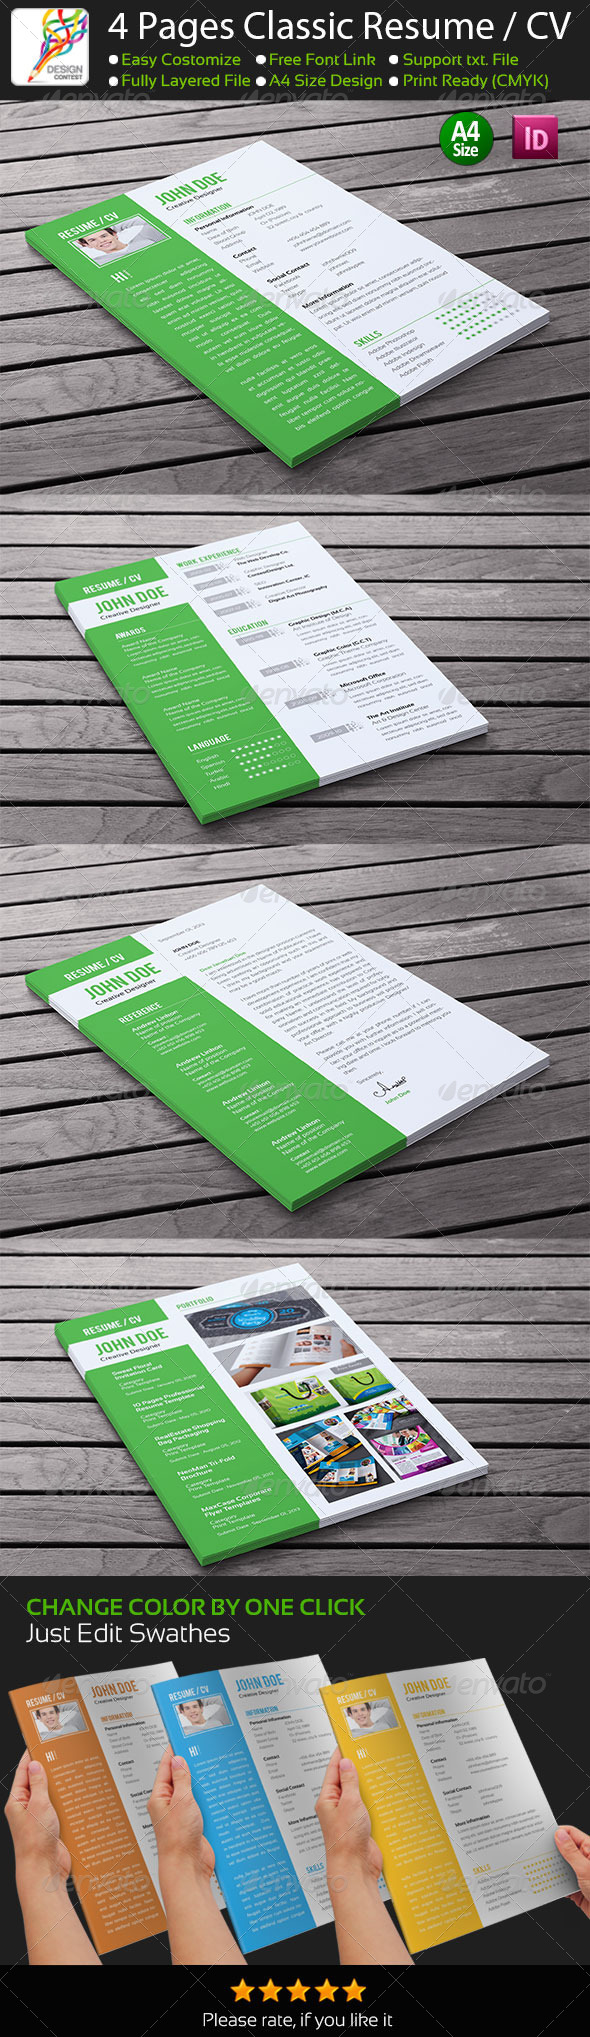 GraphicRiver 4 Pages Classic InDesign Resume 5504897